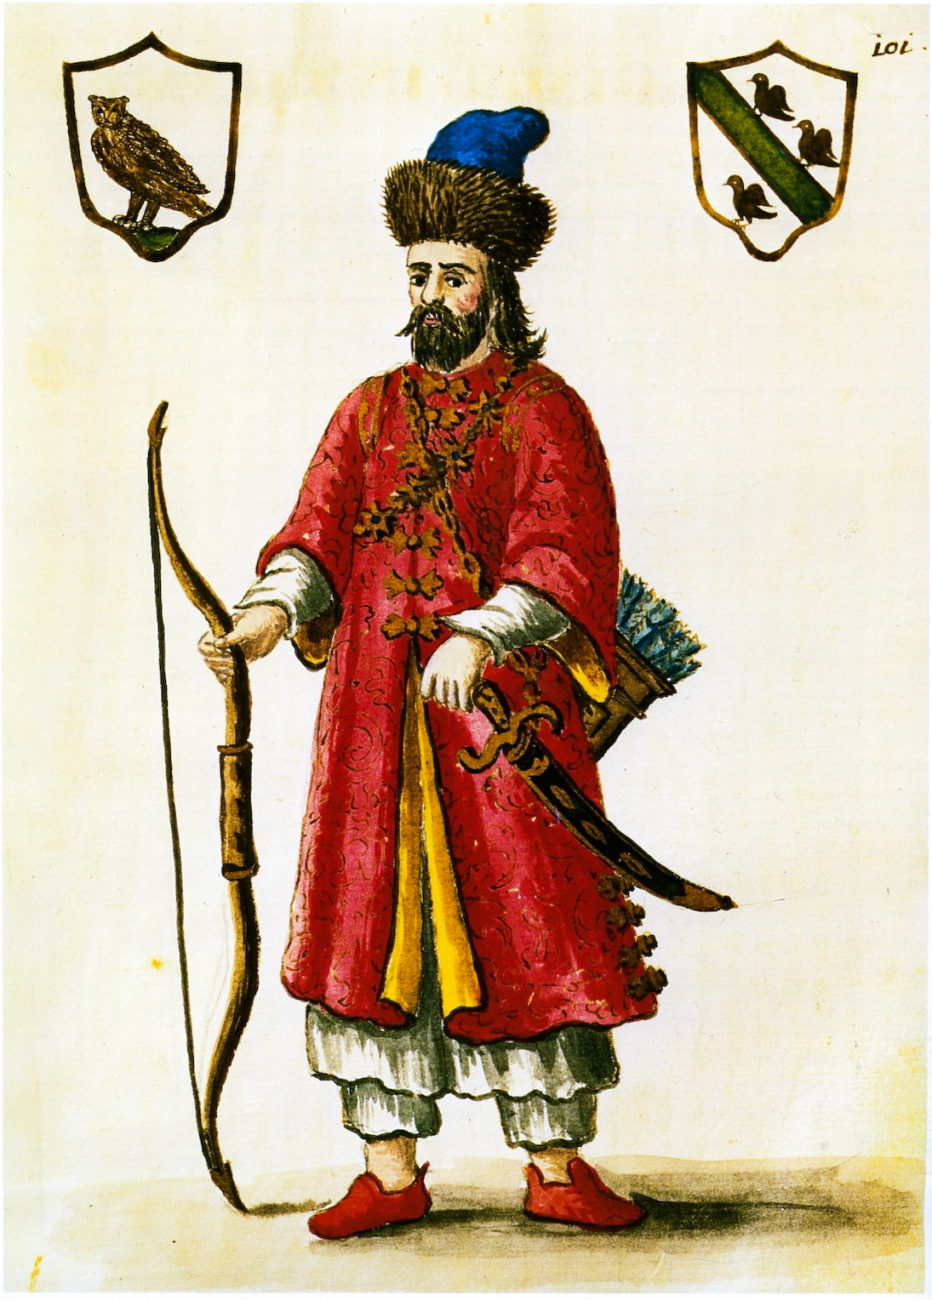 Marco Polo in Tartar Outfit, Travel Synonyms